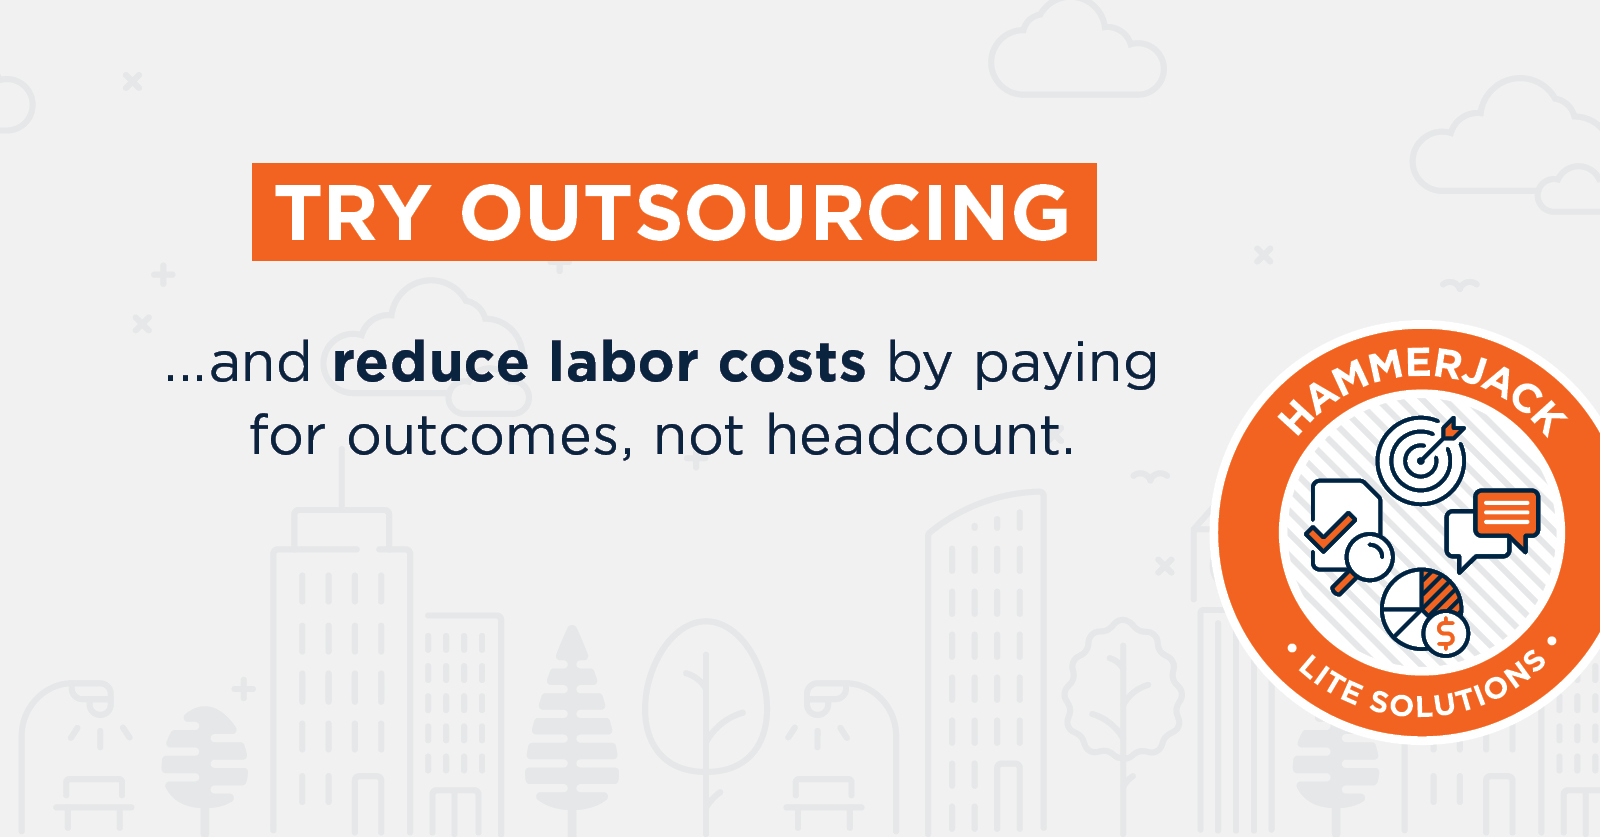 Try-outsourcing-reduce-costs.jpg